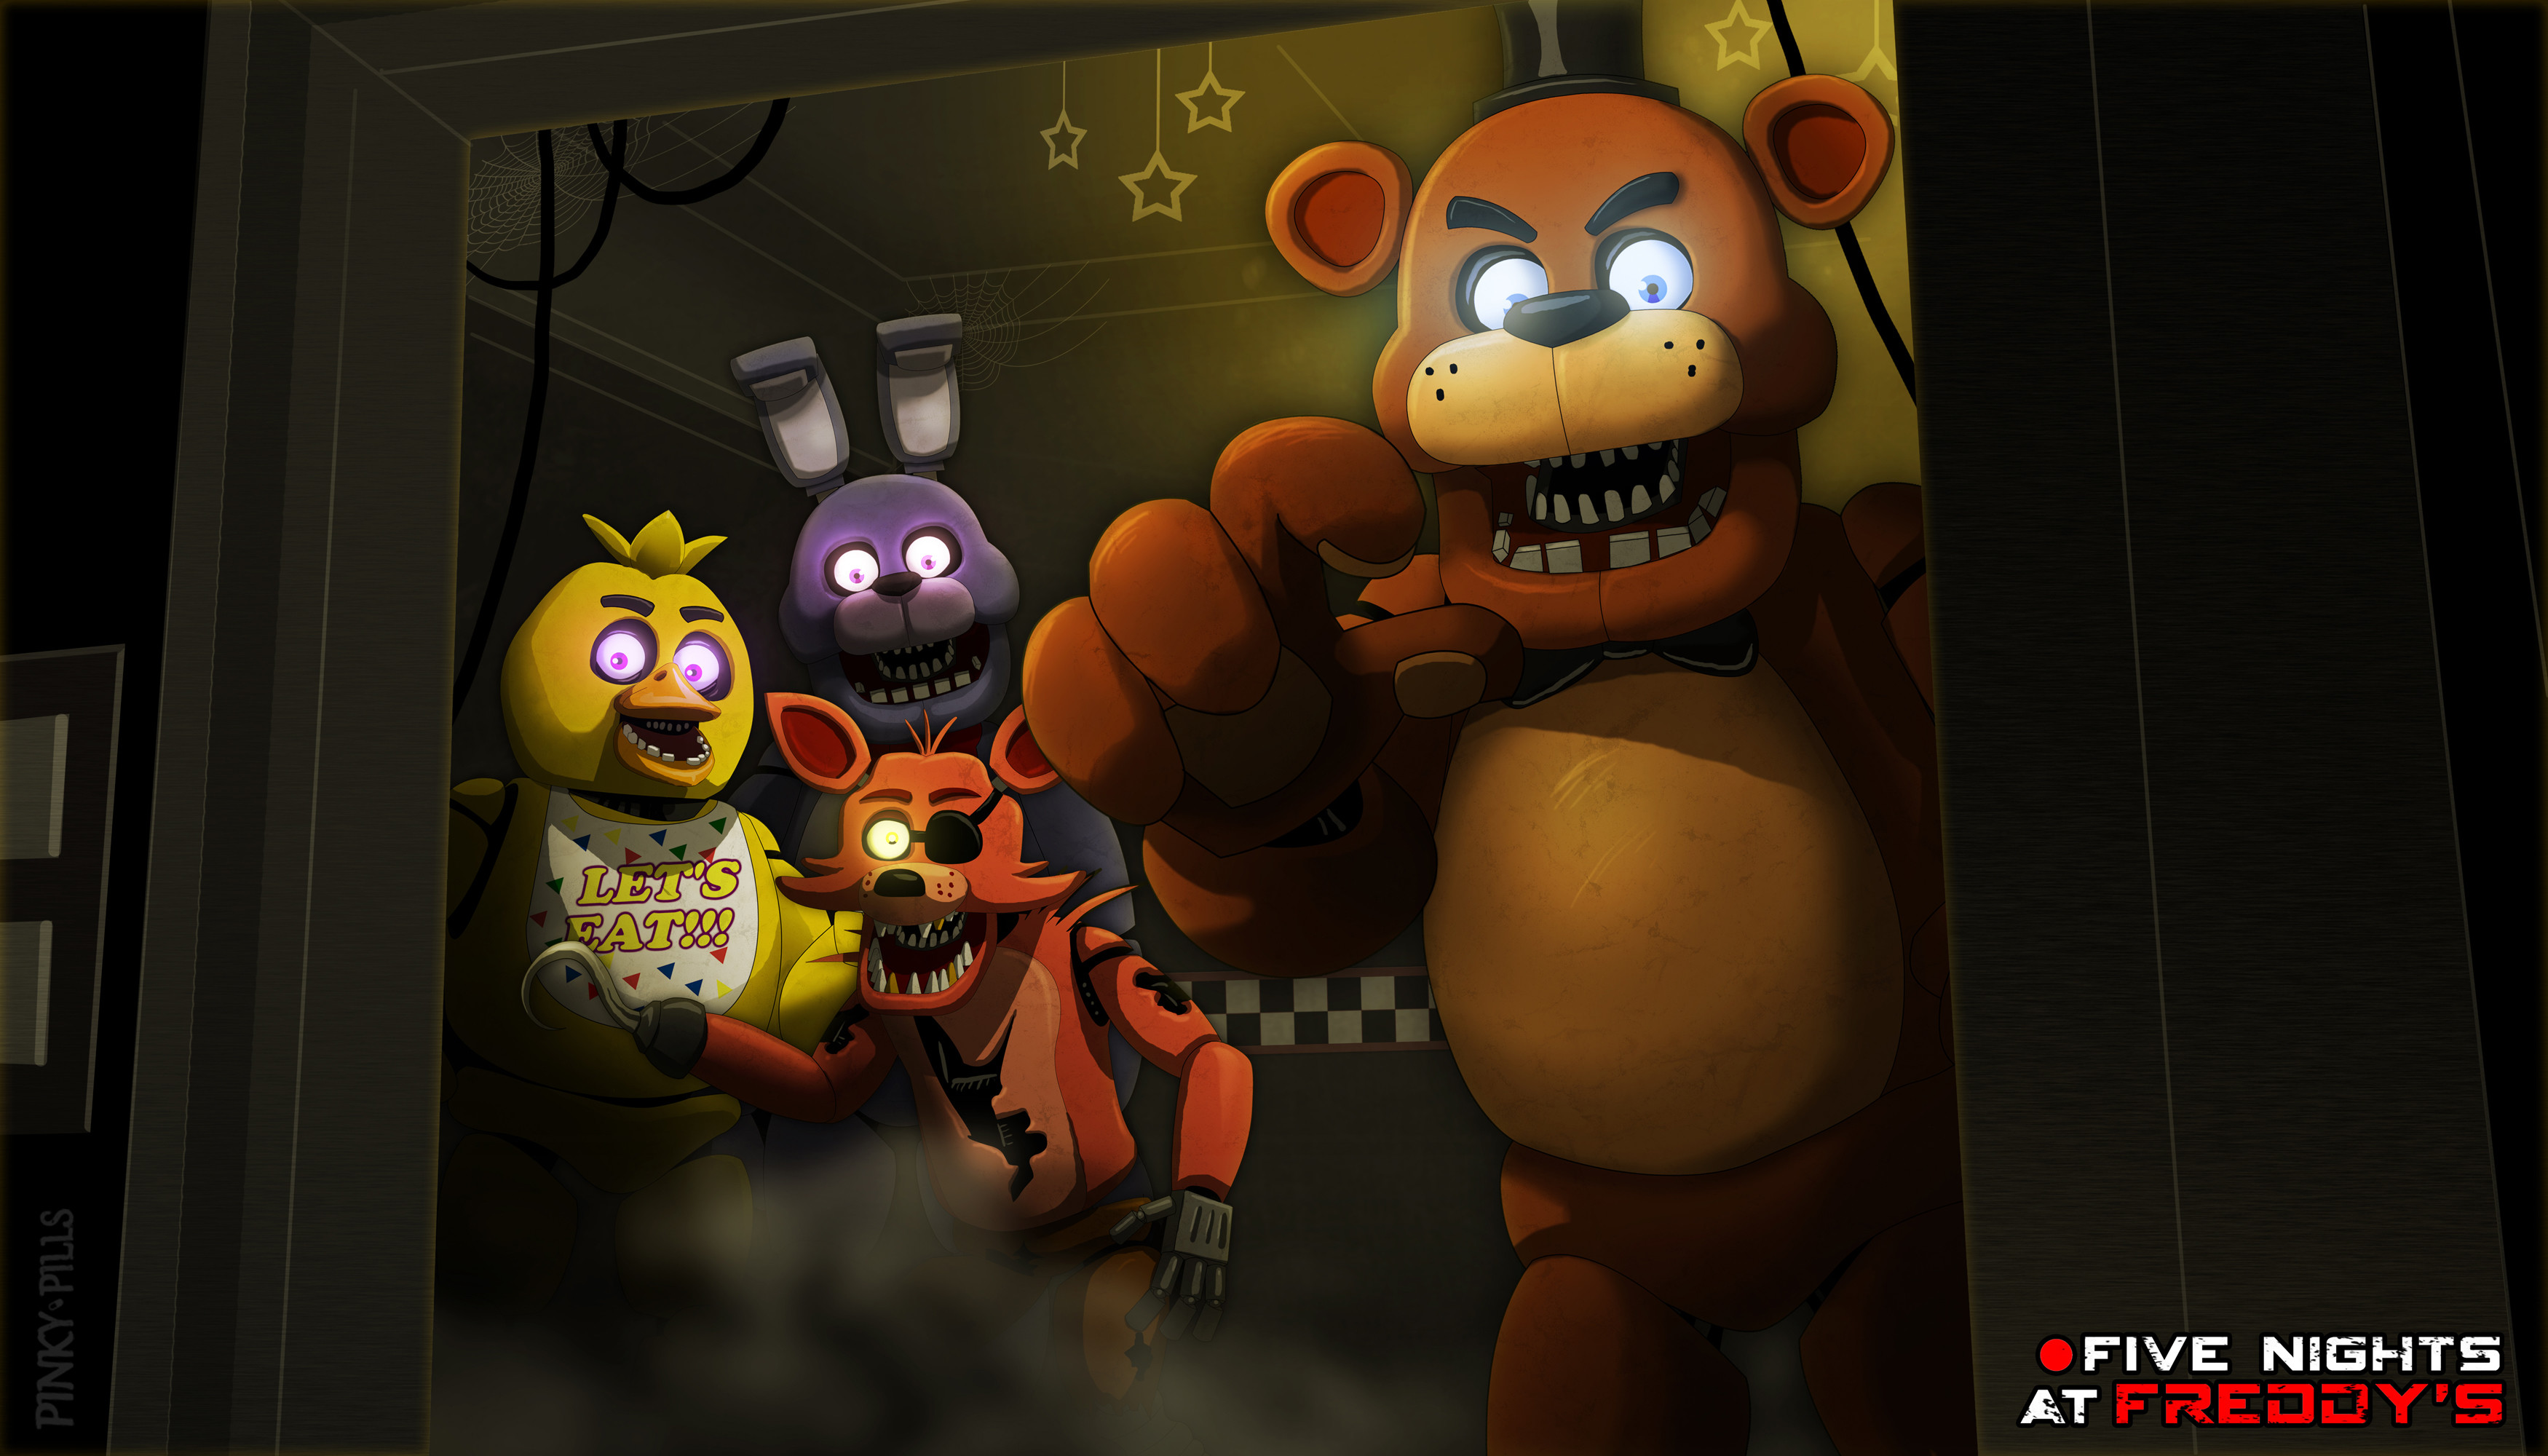 3500x2000 FNaF1 Wallpaper by PinkyPills FNaF1 Wallpaper by PinkyPills